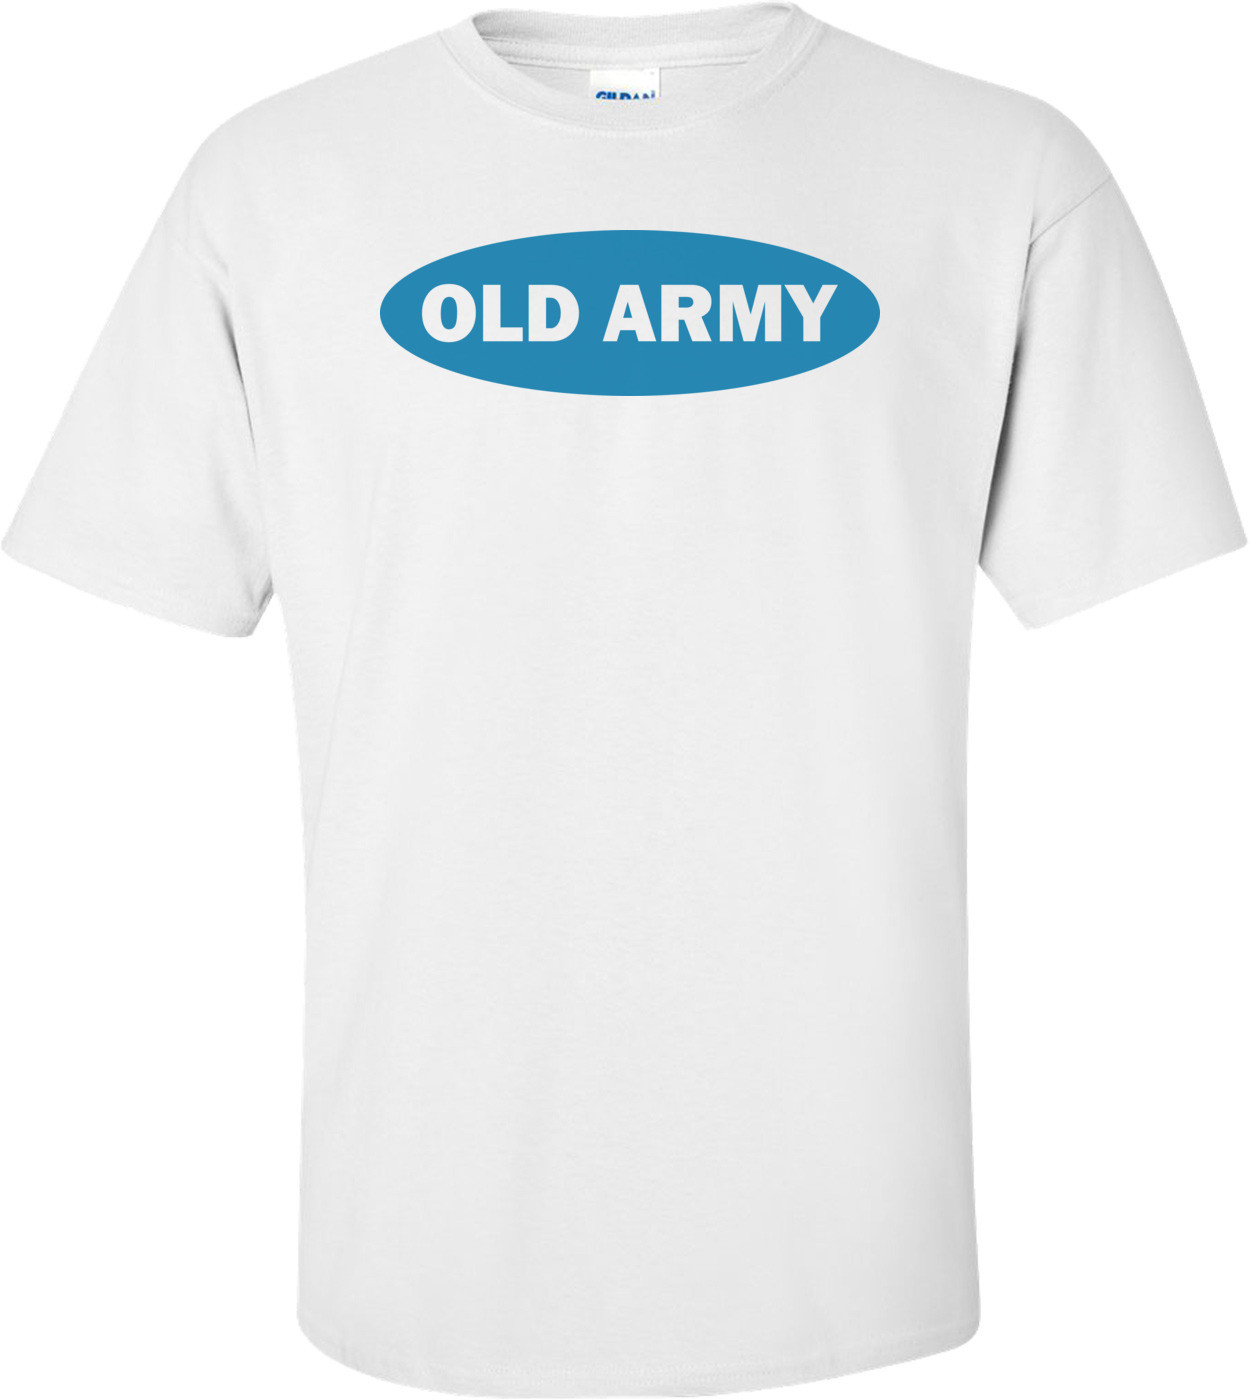 Old Army Funny Shirt